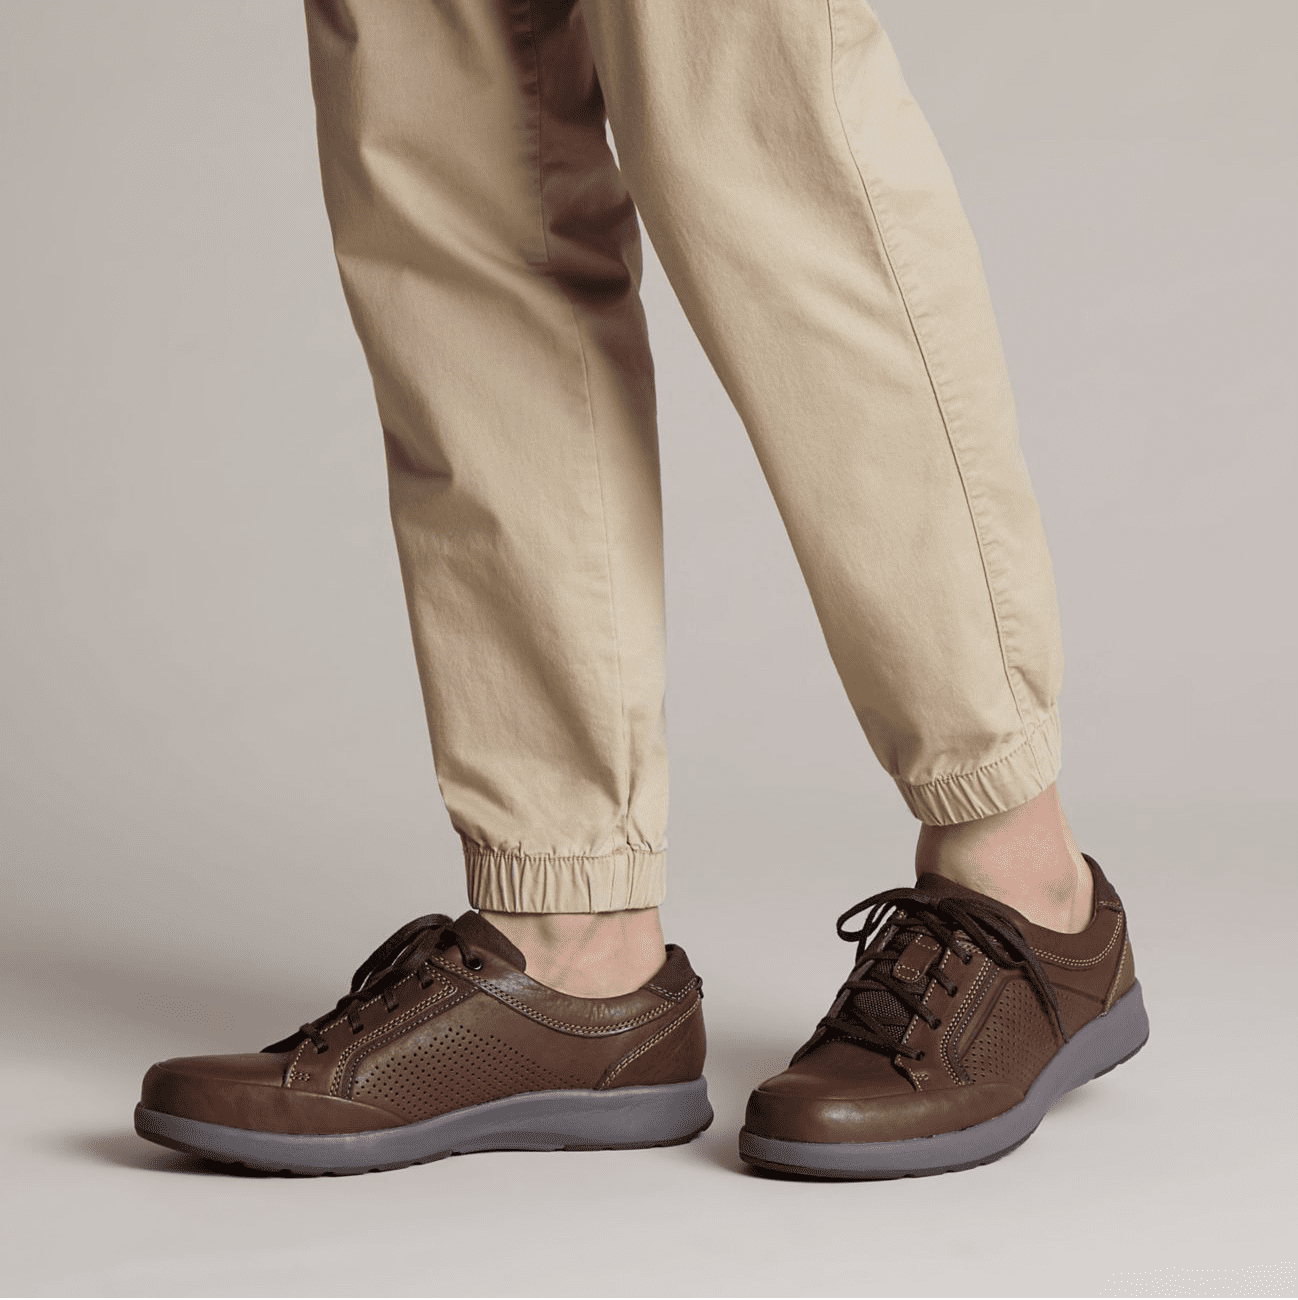 Clarks: Up to 70% off on sale styles